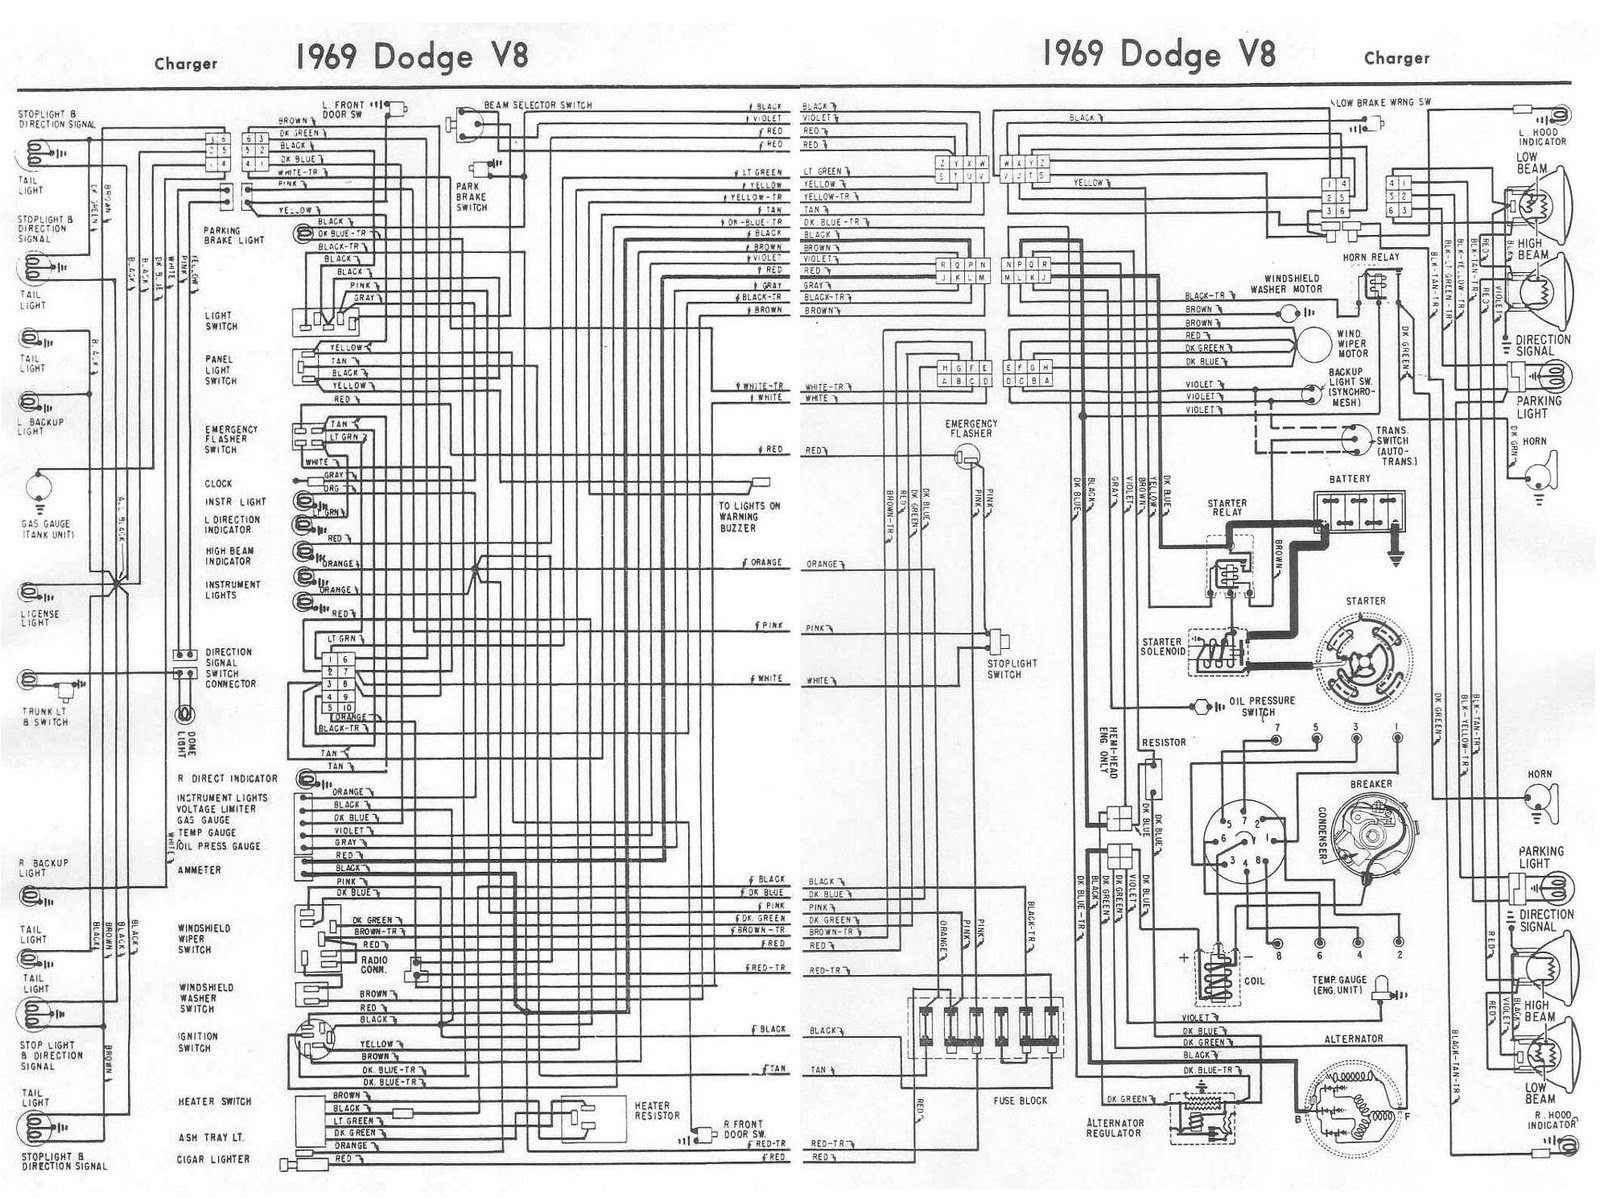 1969 dodge charger v8 complete wiring diagram jpg